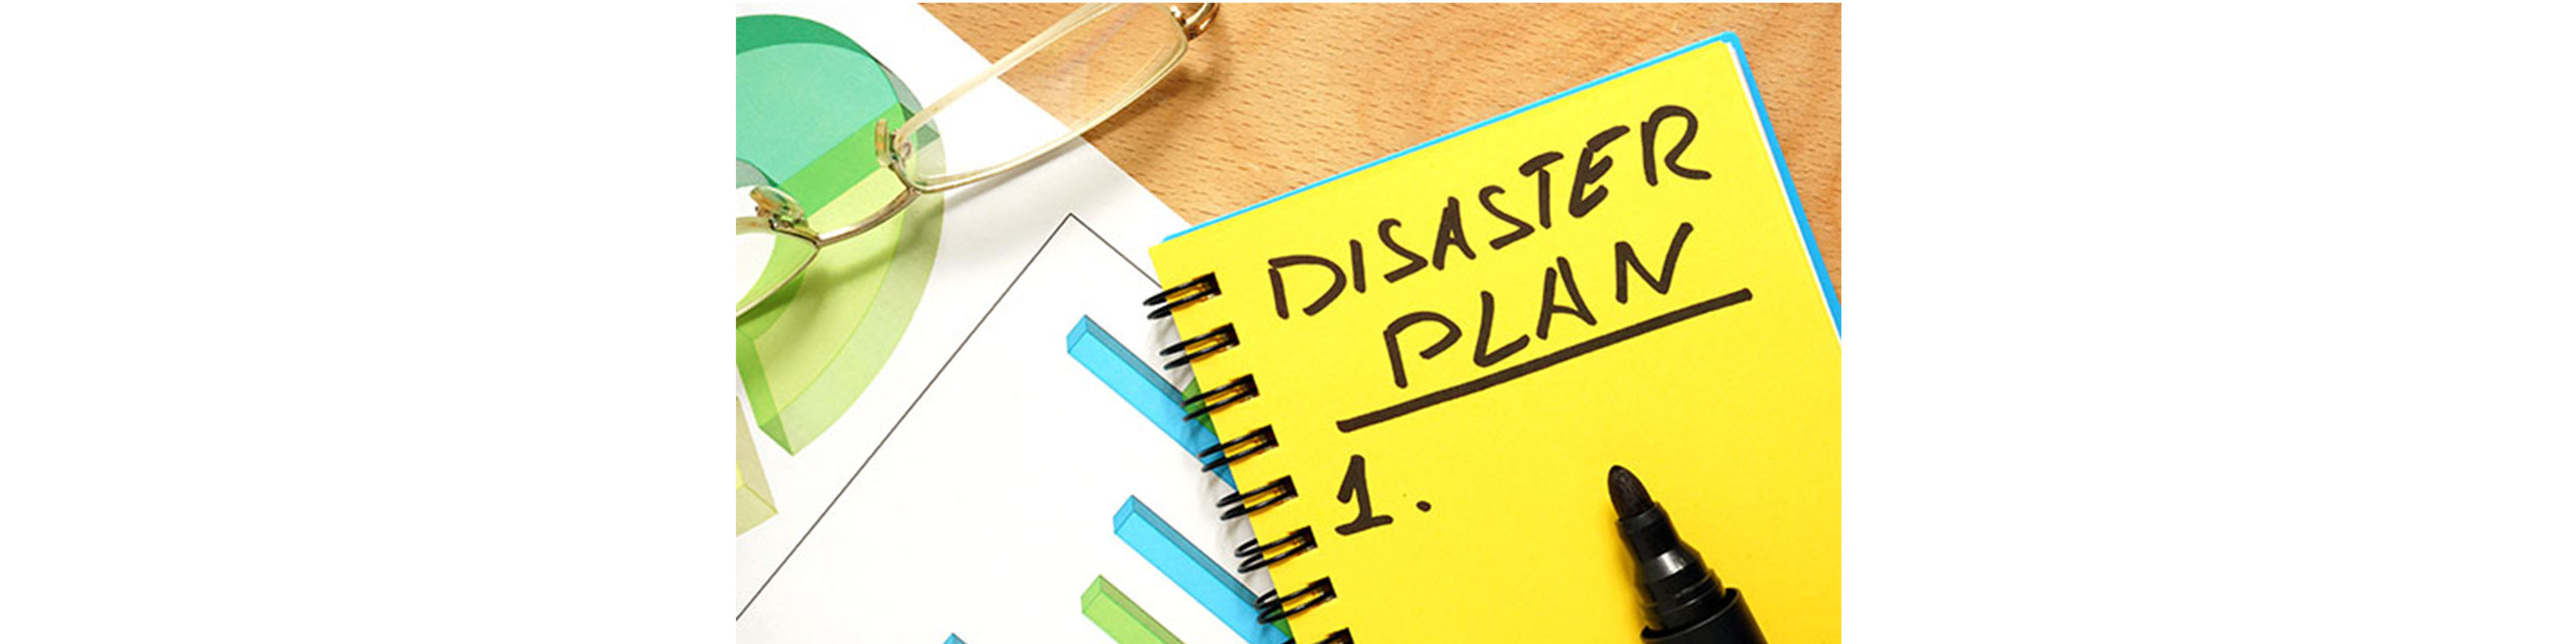 Contingency Planning How to Protect Small Business